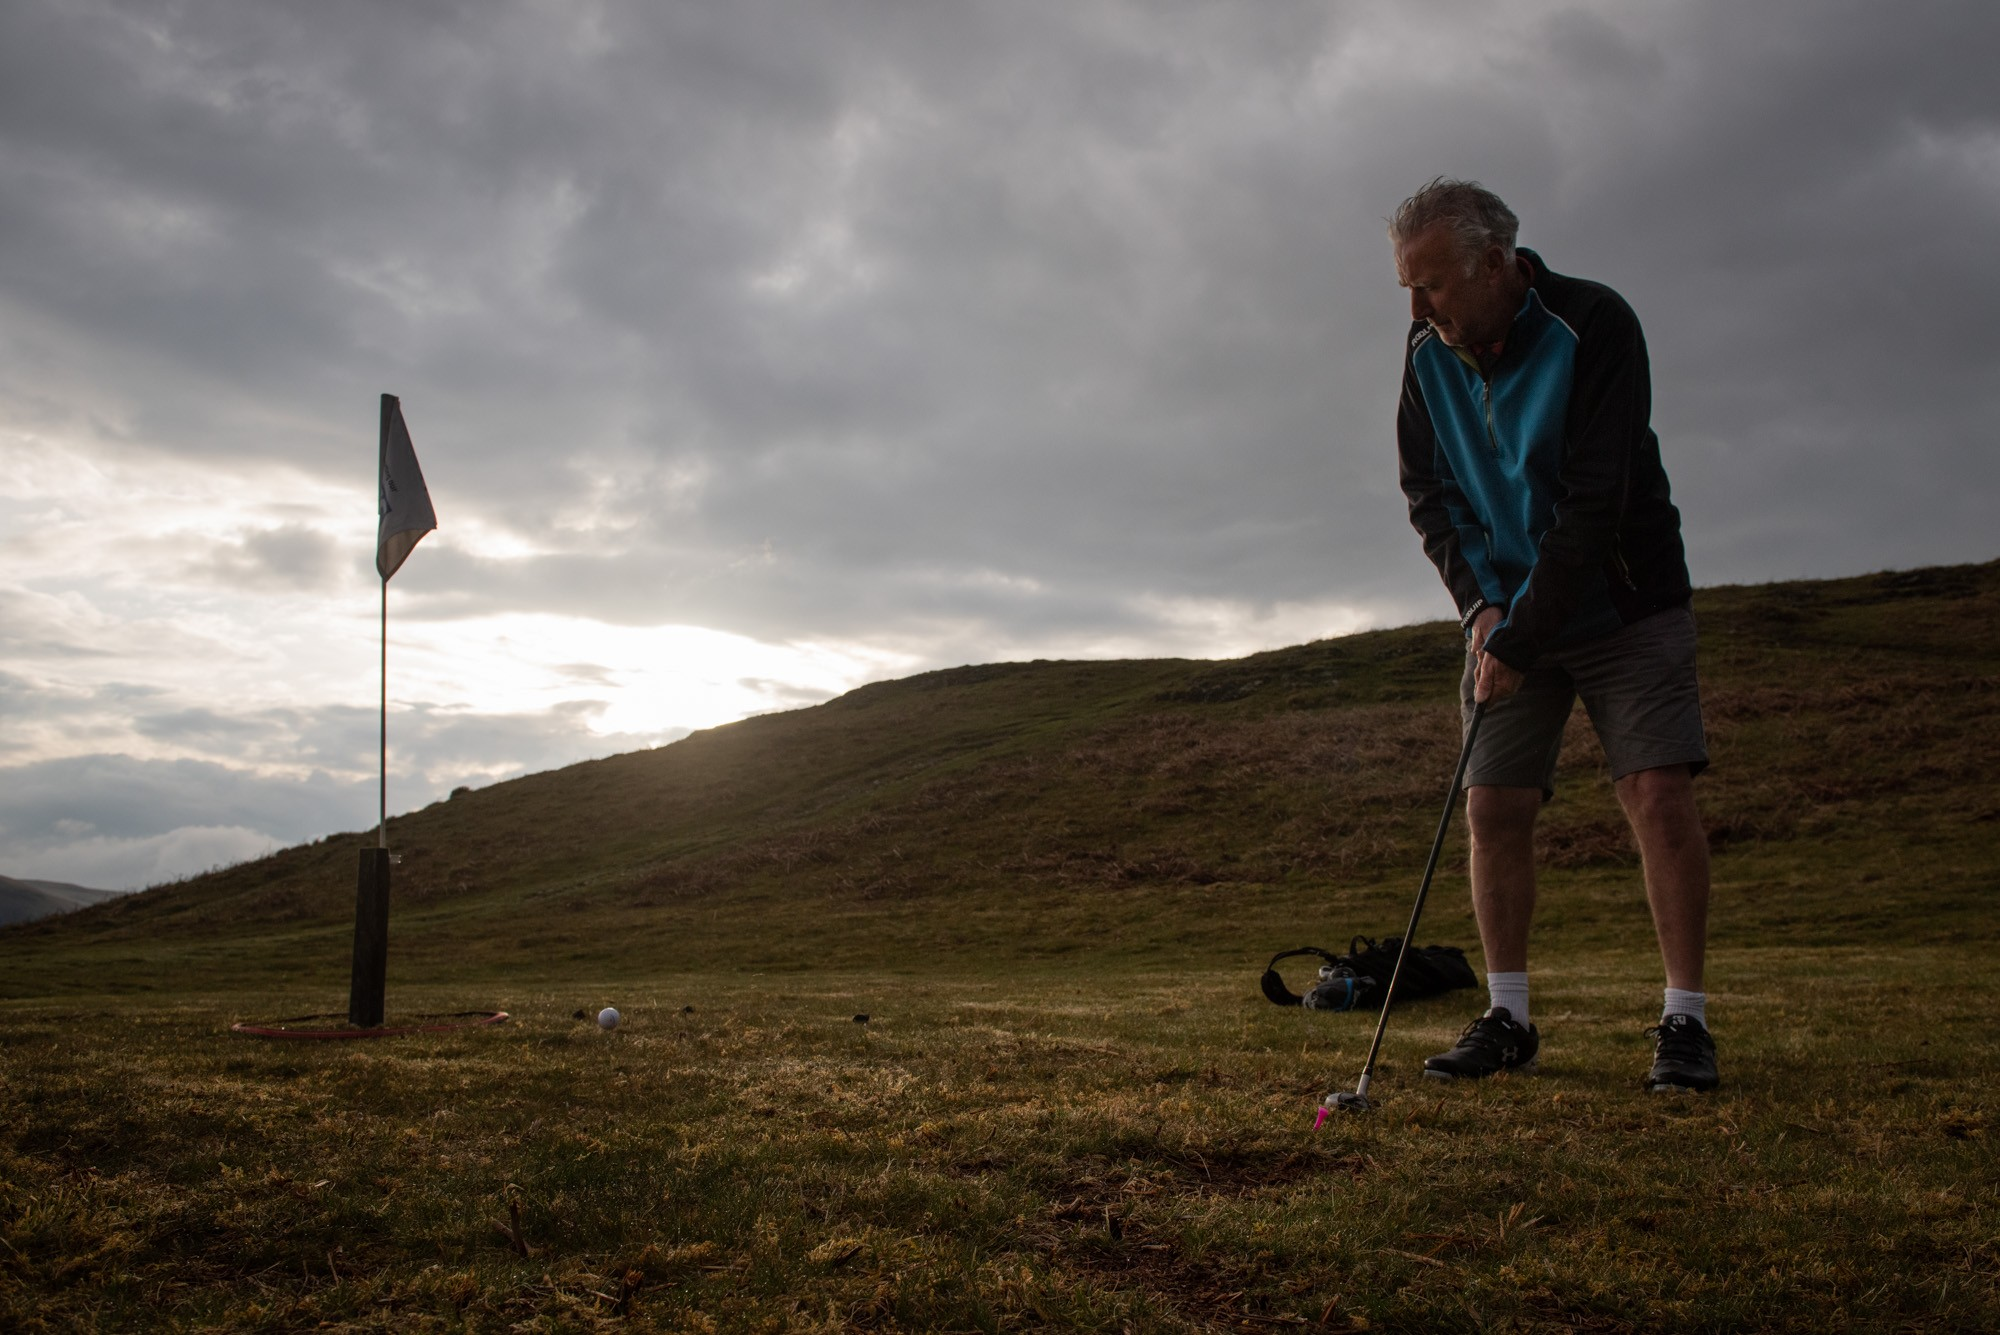 Philip Hatcher-Moore: Phil photographs curious golfers for NYT